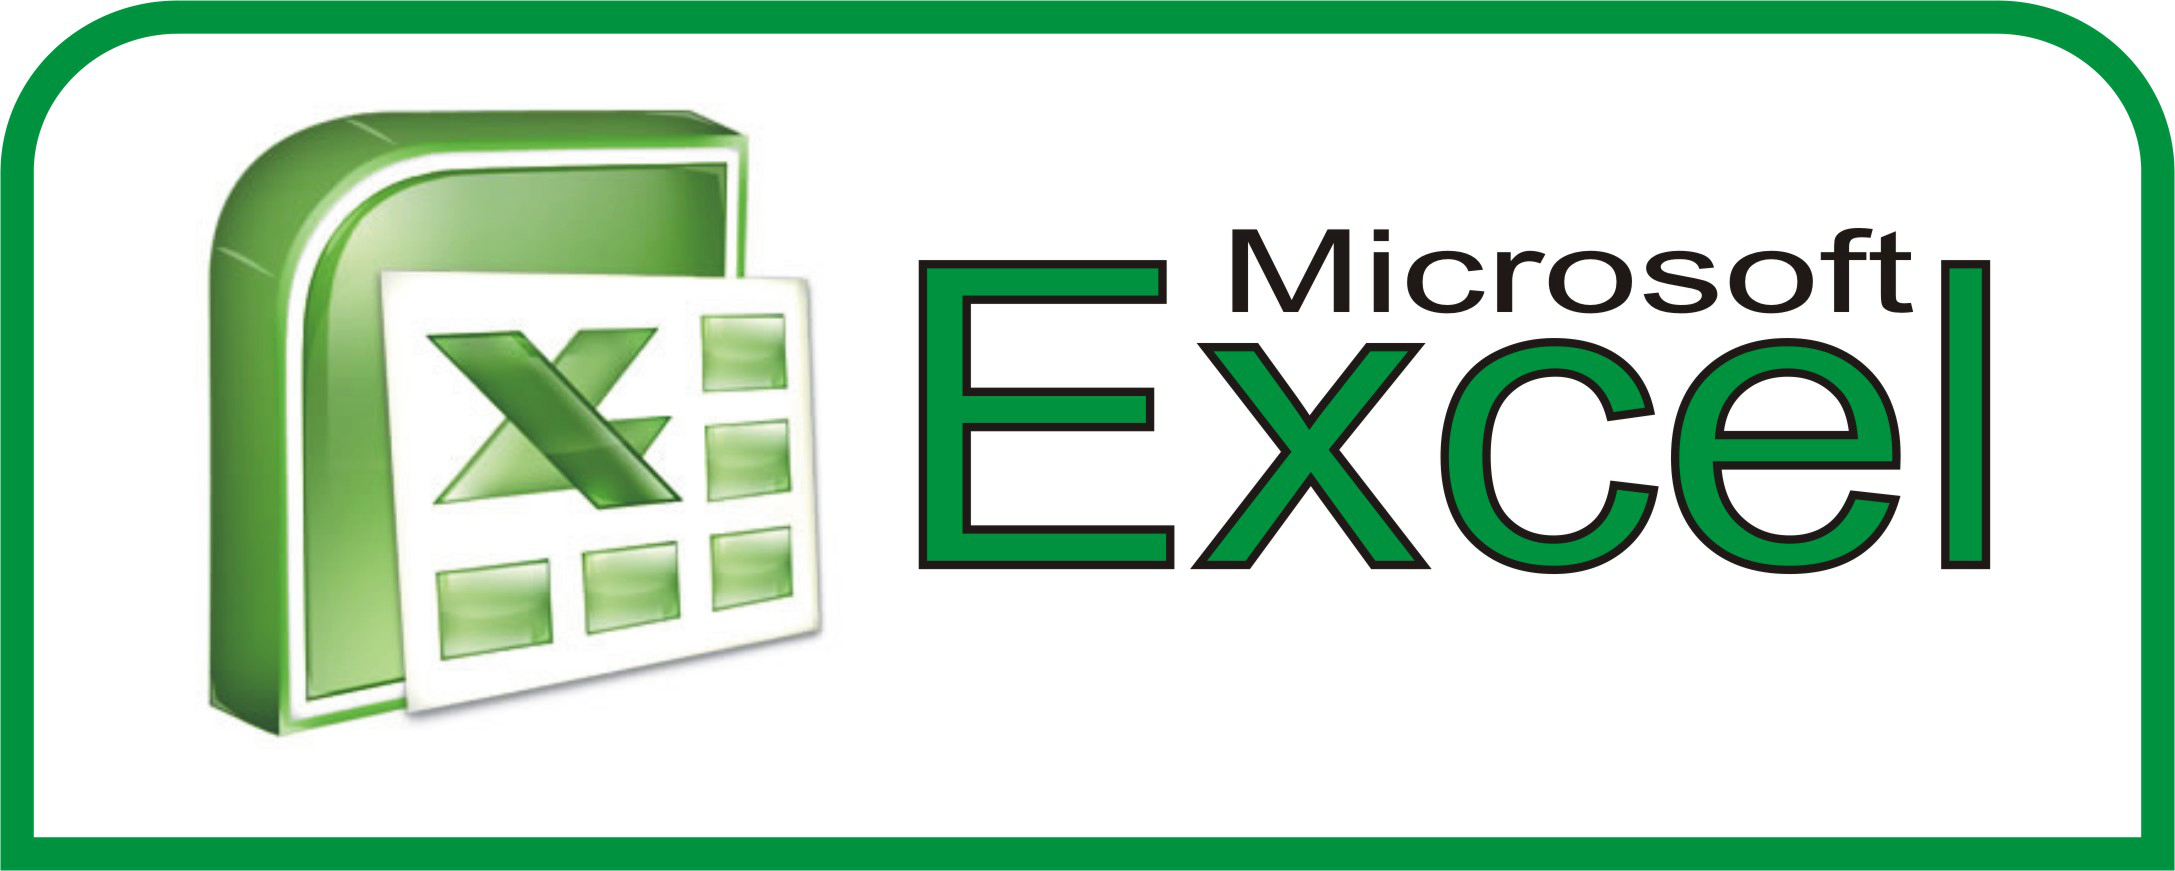 Ediblewildsus  Remarkable  Excel Shortcuts You Probably Didnt Know About  Techdissected With Great Excel Training Online Free Besides Excel Balance Sheet Template Furthermore Excel Vba Mod With Delectable Make A Timeline In Excel Also How To Insert Cells In Excel In Addition Perform Spell Check In Excel And Copy Formulas In Excel As Well As Data Analysis On Excel Mac Additionally Mid Formula In Excel From Techdissectedcom With Ediblewildsus  Great  Excel Shortcuts You Probably Didnt Know About  Techdissected With Delectable Excel Training Online Free Besides Excel Balance Sheet Template Furthermore Excel Vba Mod And Remarkable Make A Timeline In Excel Also How To Insert Cells In Excel In Addition Perform Spell Check In Excel From Techdissectedcom